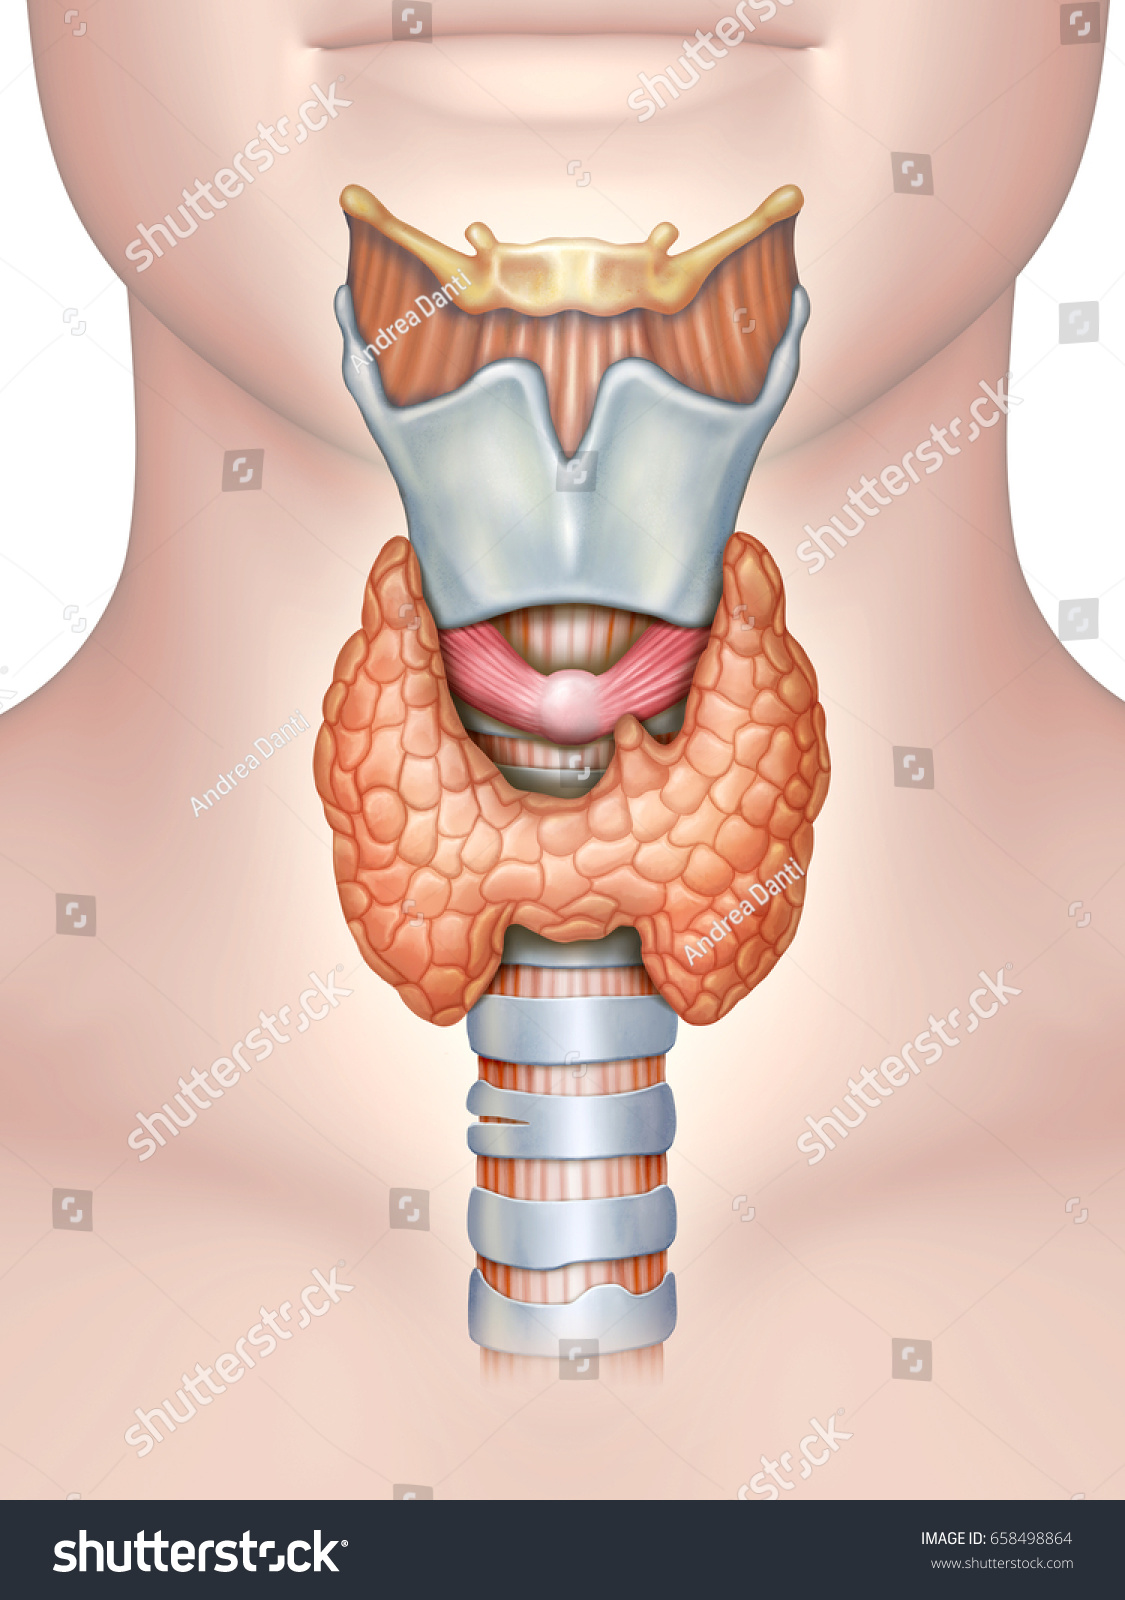 Anatomy Thyroid Gland Digital Illustration Stock Illustration